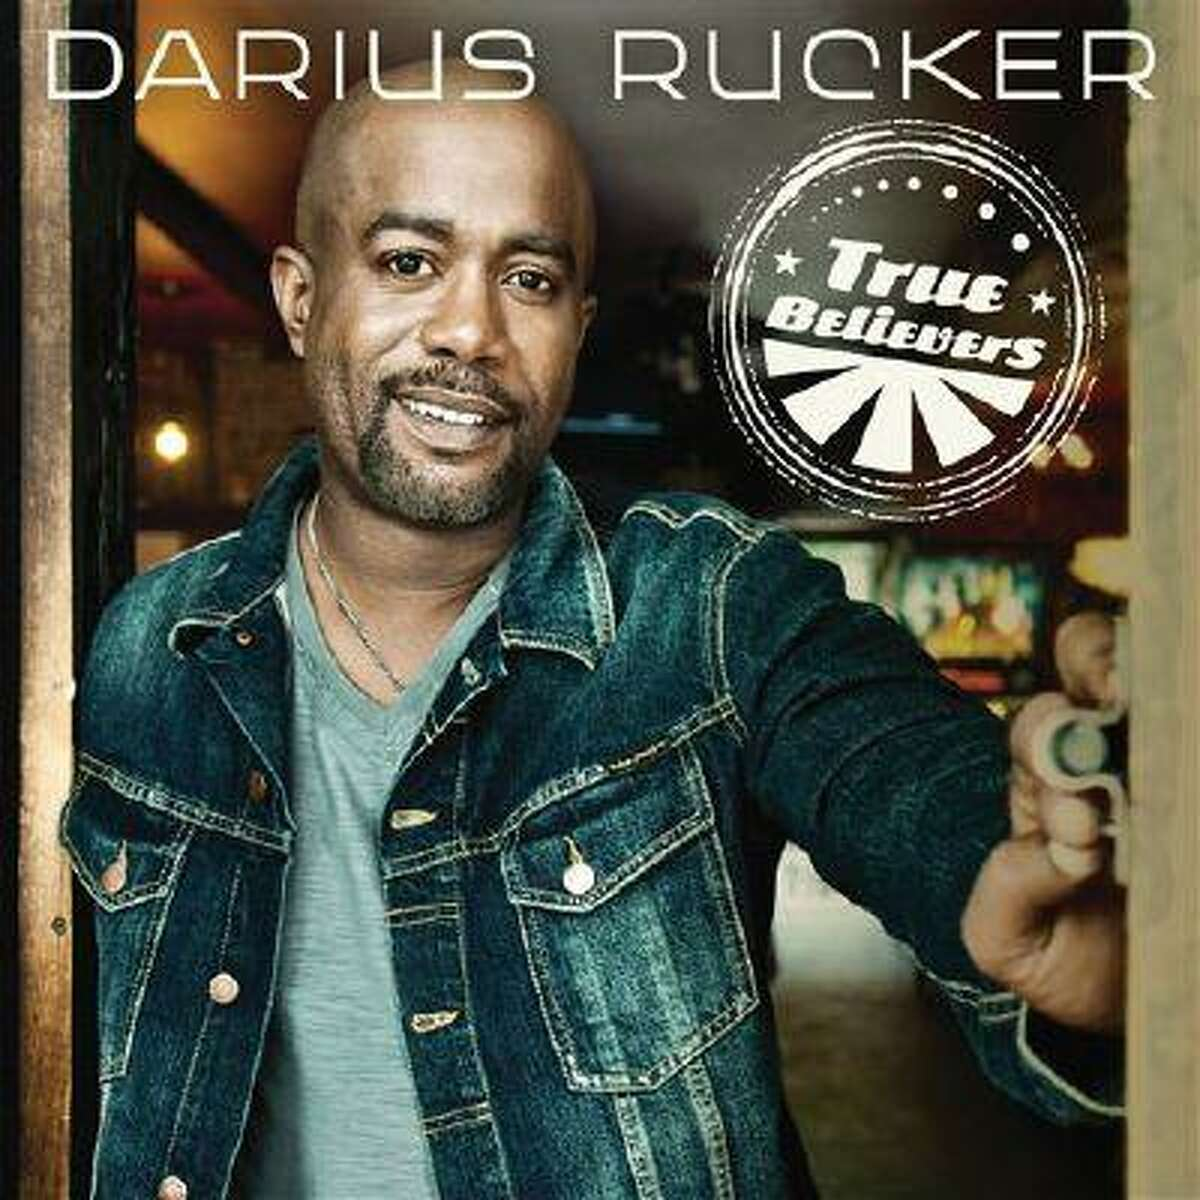 This CD cover image released by Capitol Nashville shows